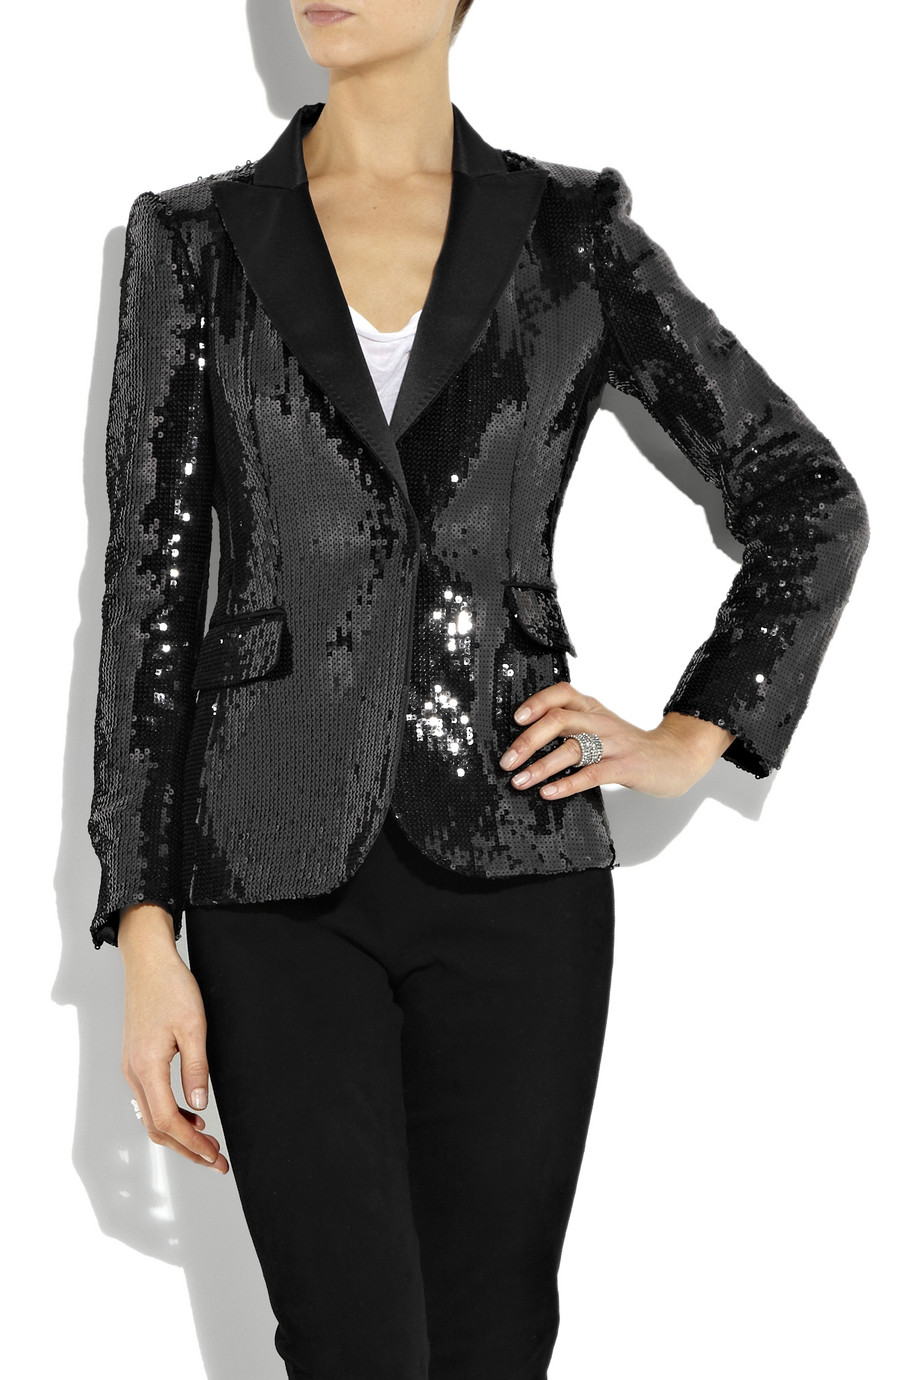 Lyst - Boutique Moschino Sequined Satin Tuxedo Jacket in Black